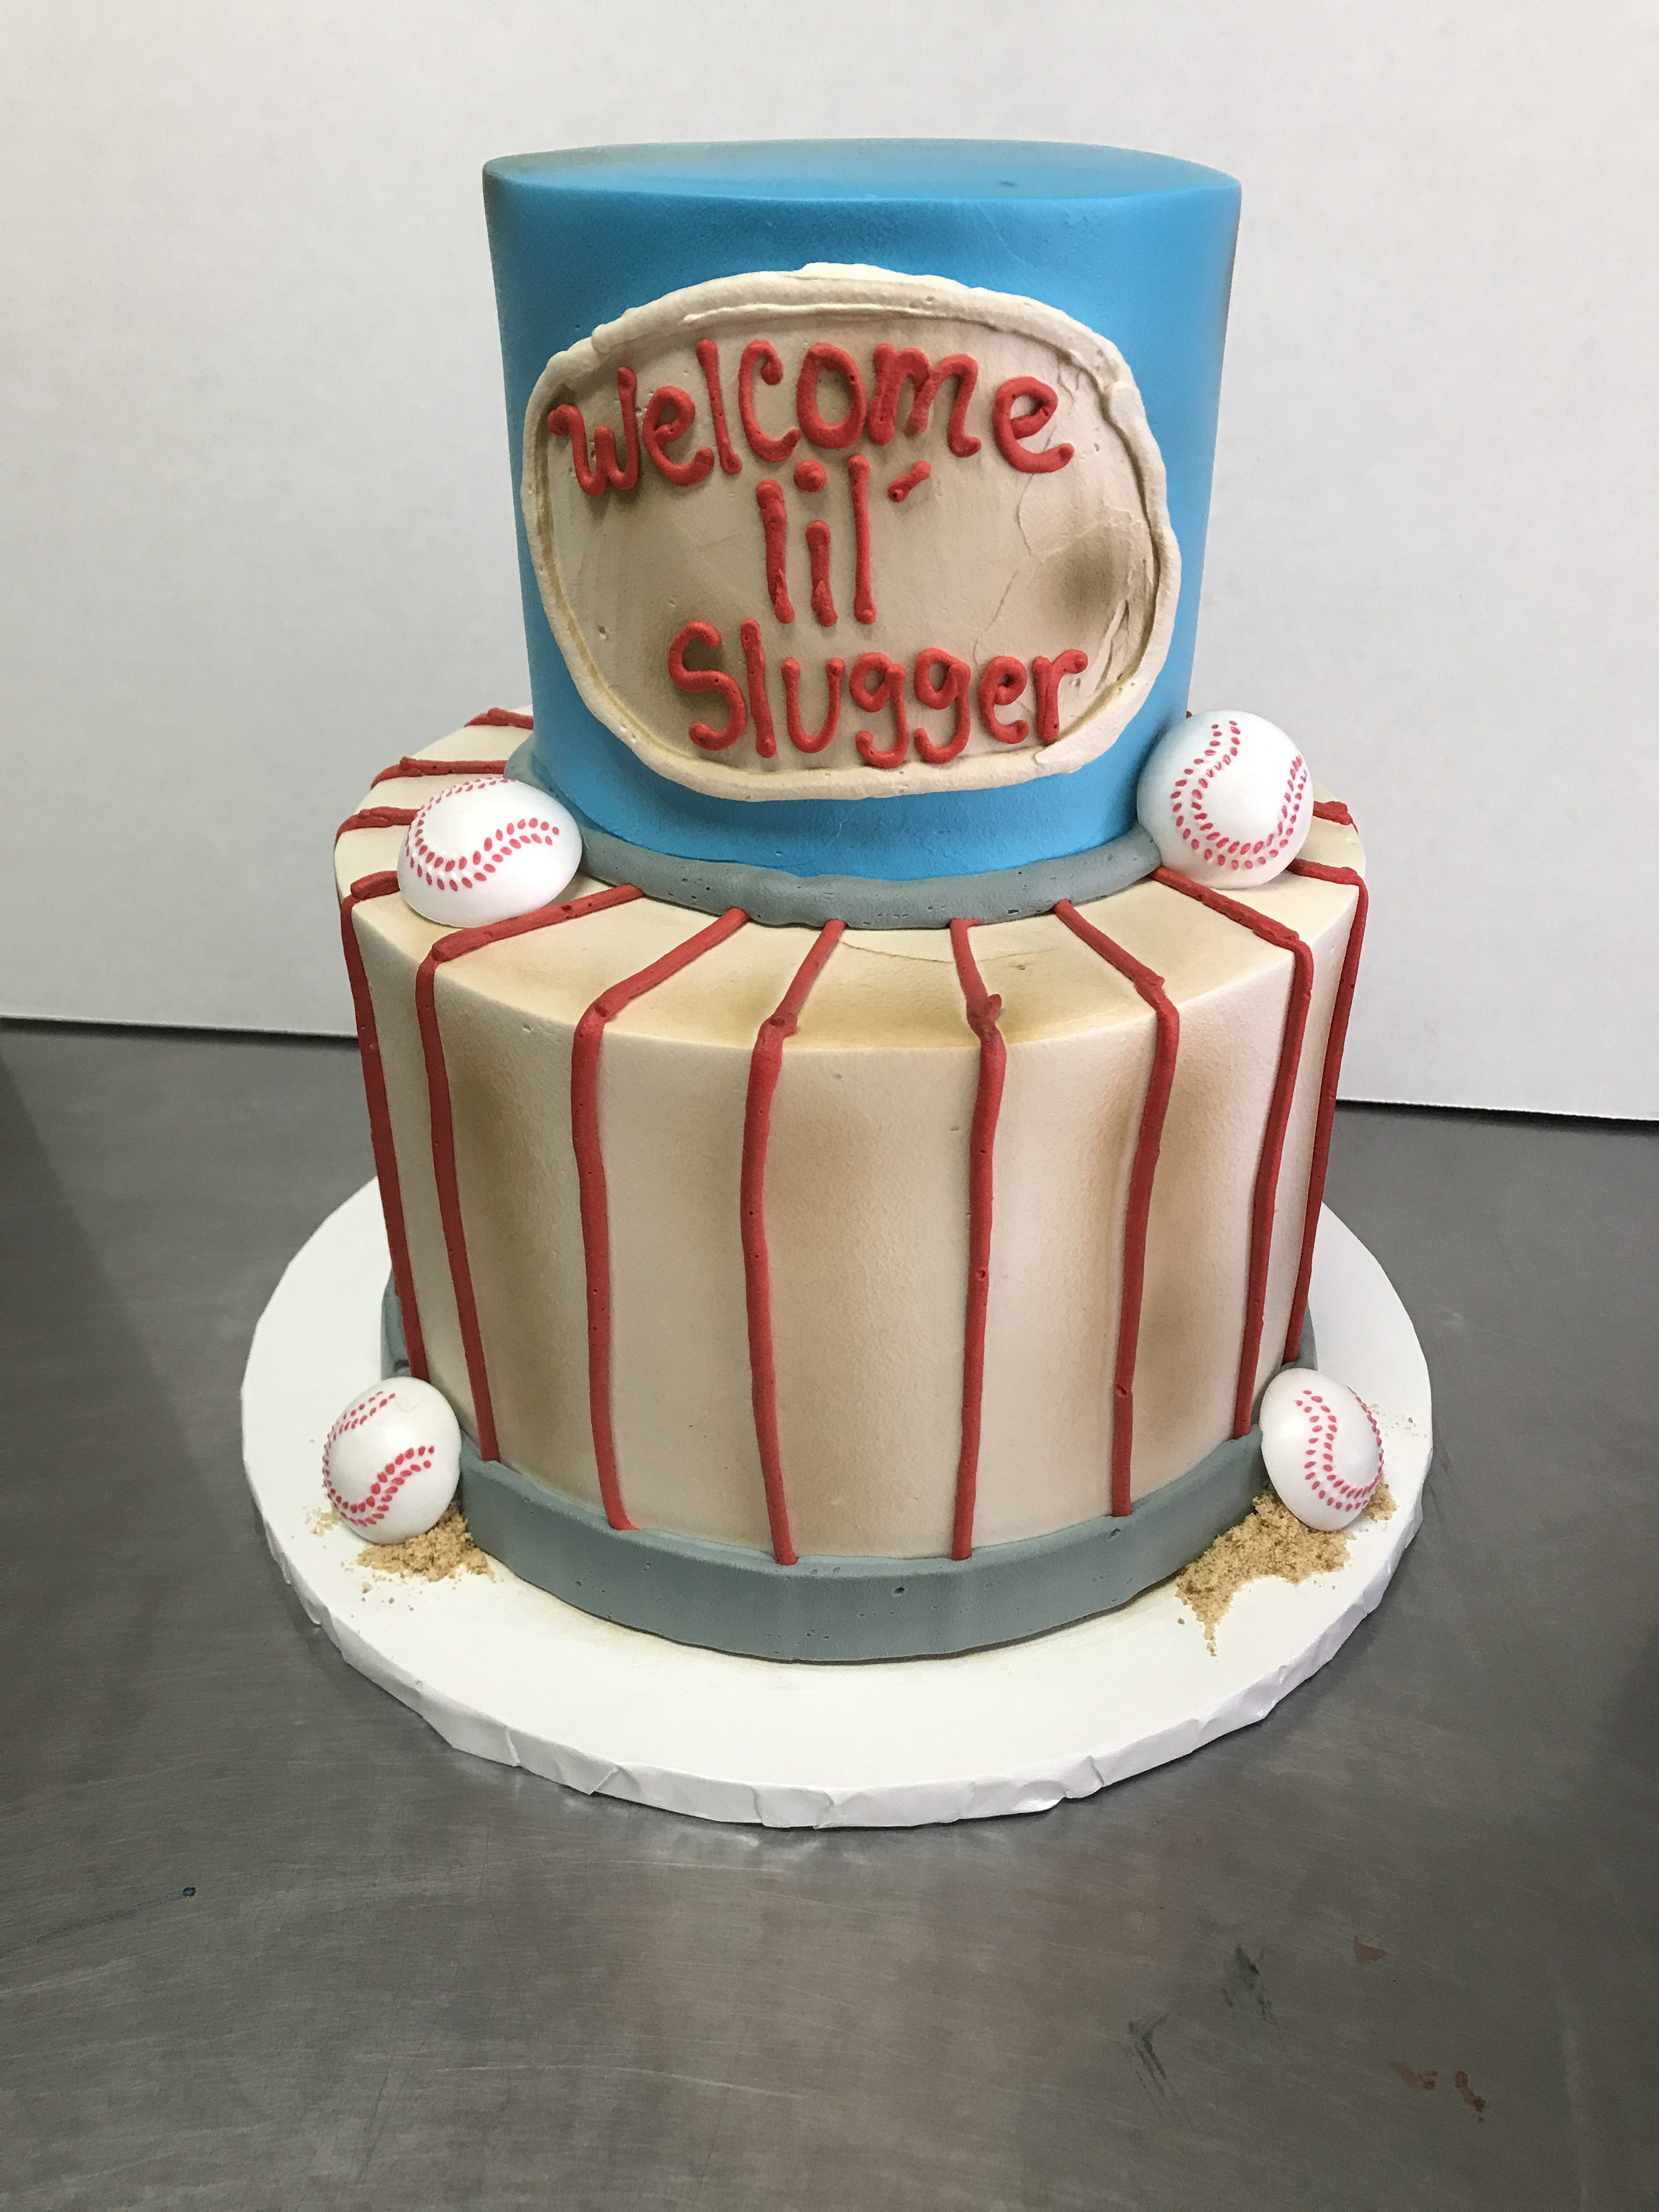 Sweet Passions Bakery – Bringing you the cake of your dreams